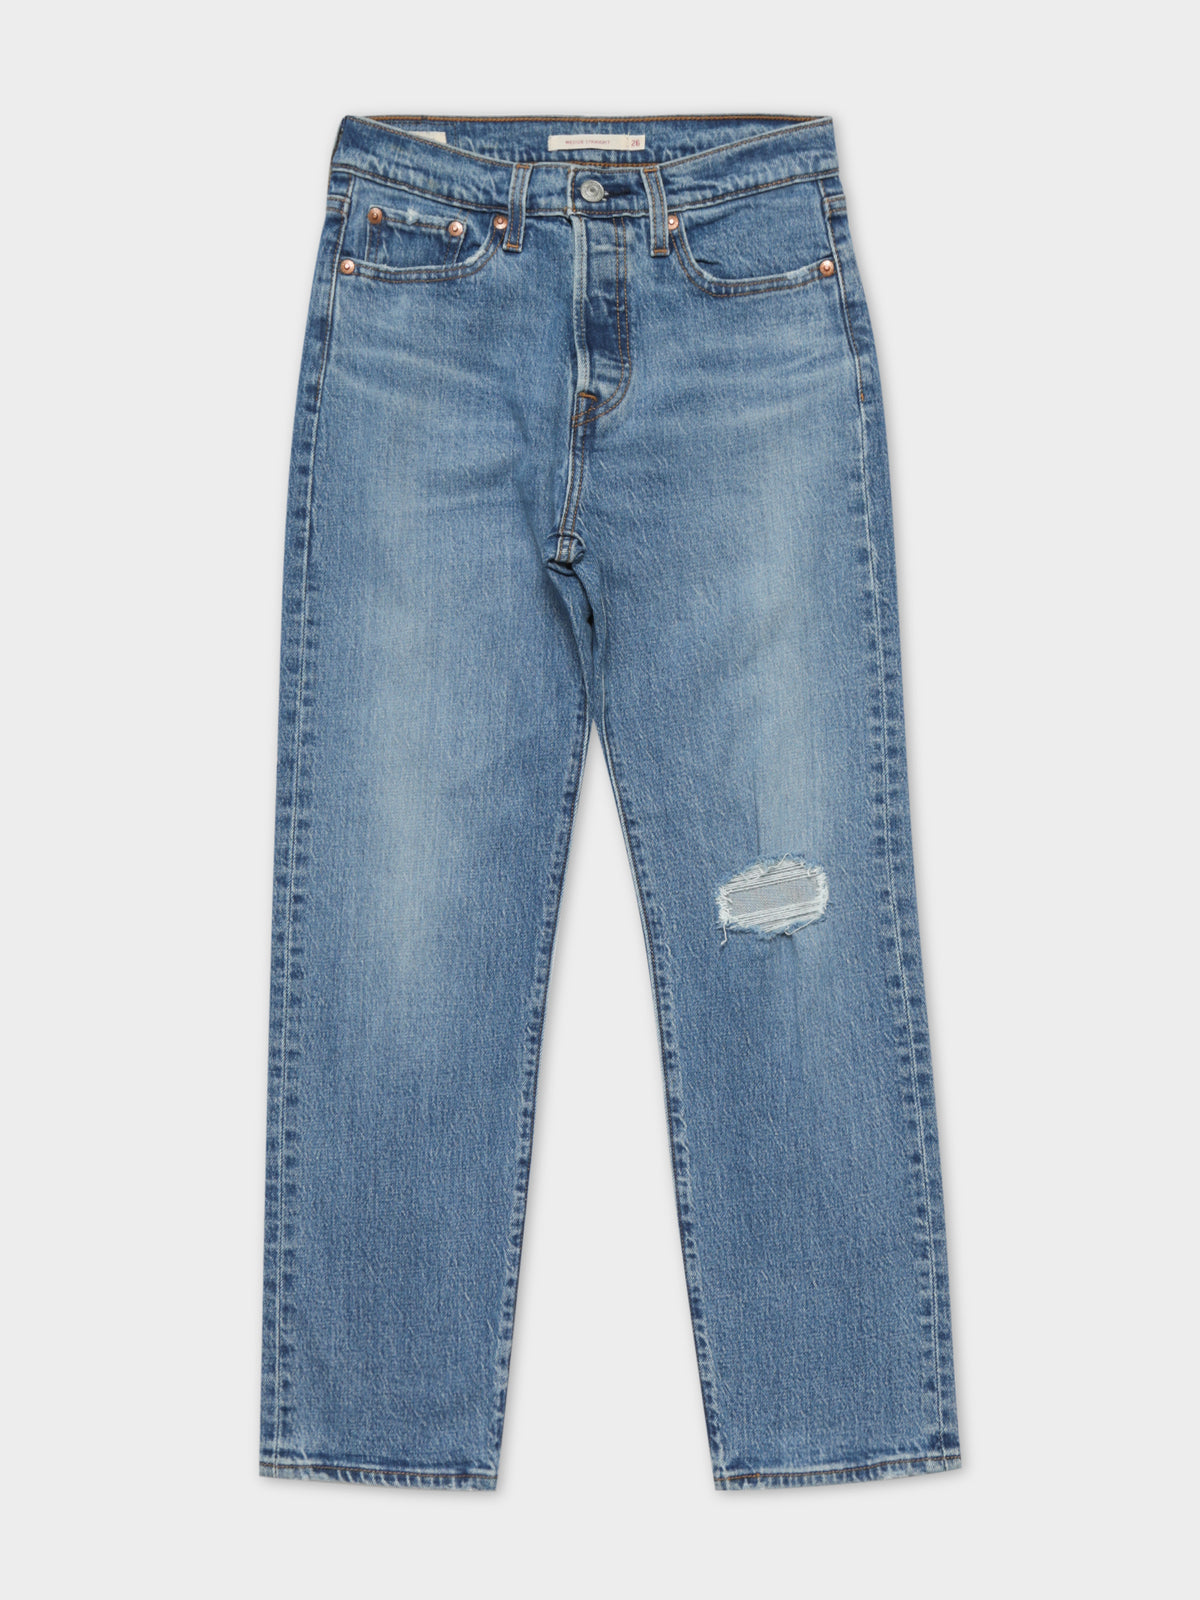 Wedgie Straight Leg Jeans in Medium Wash Jive Tone